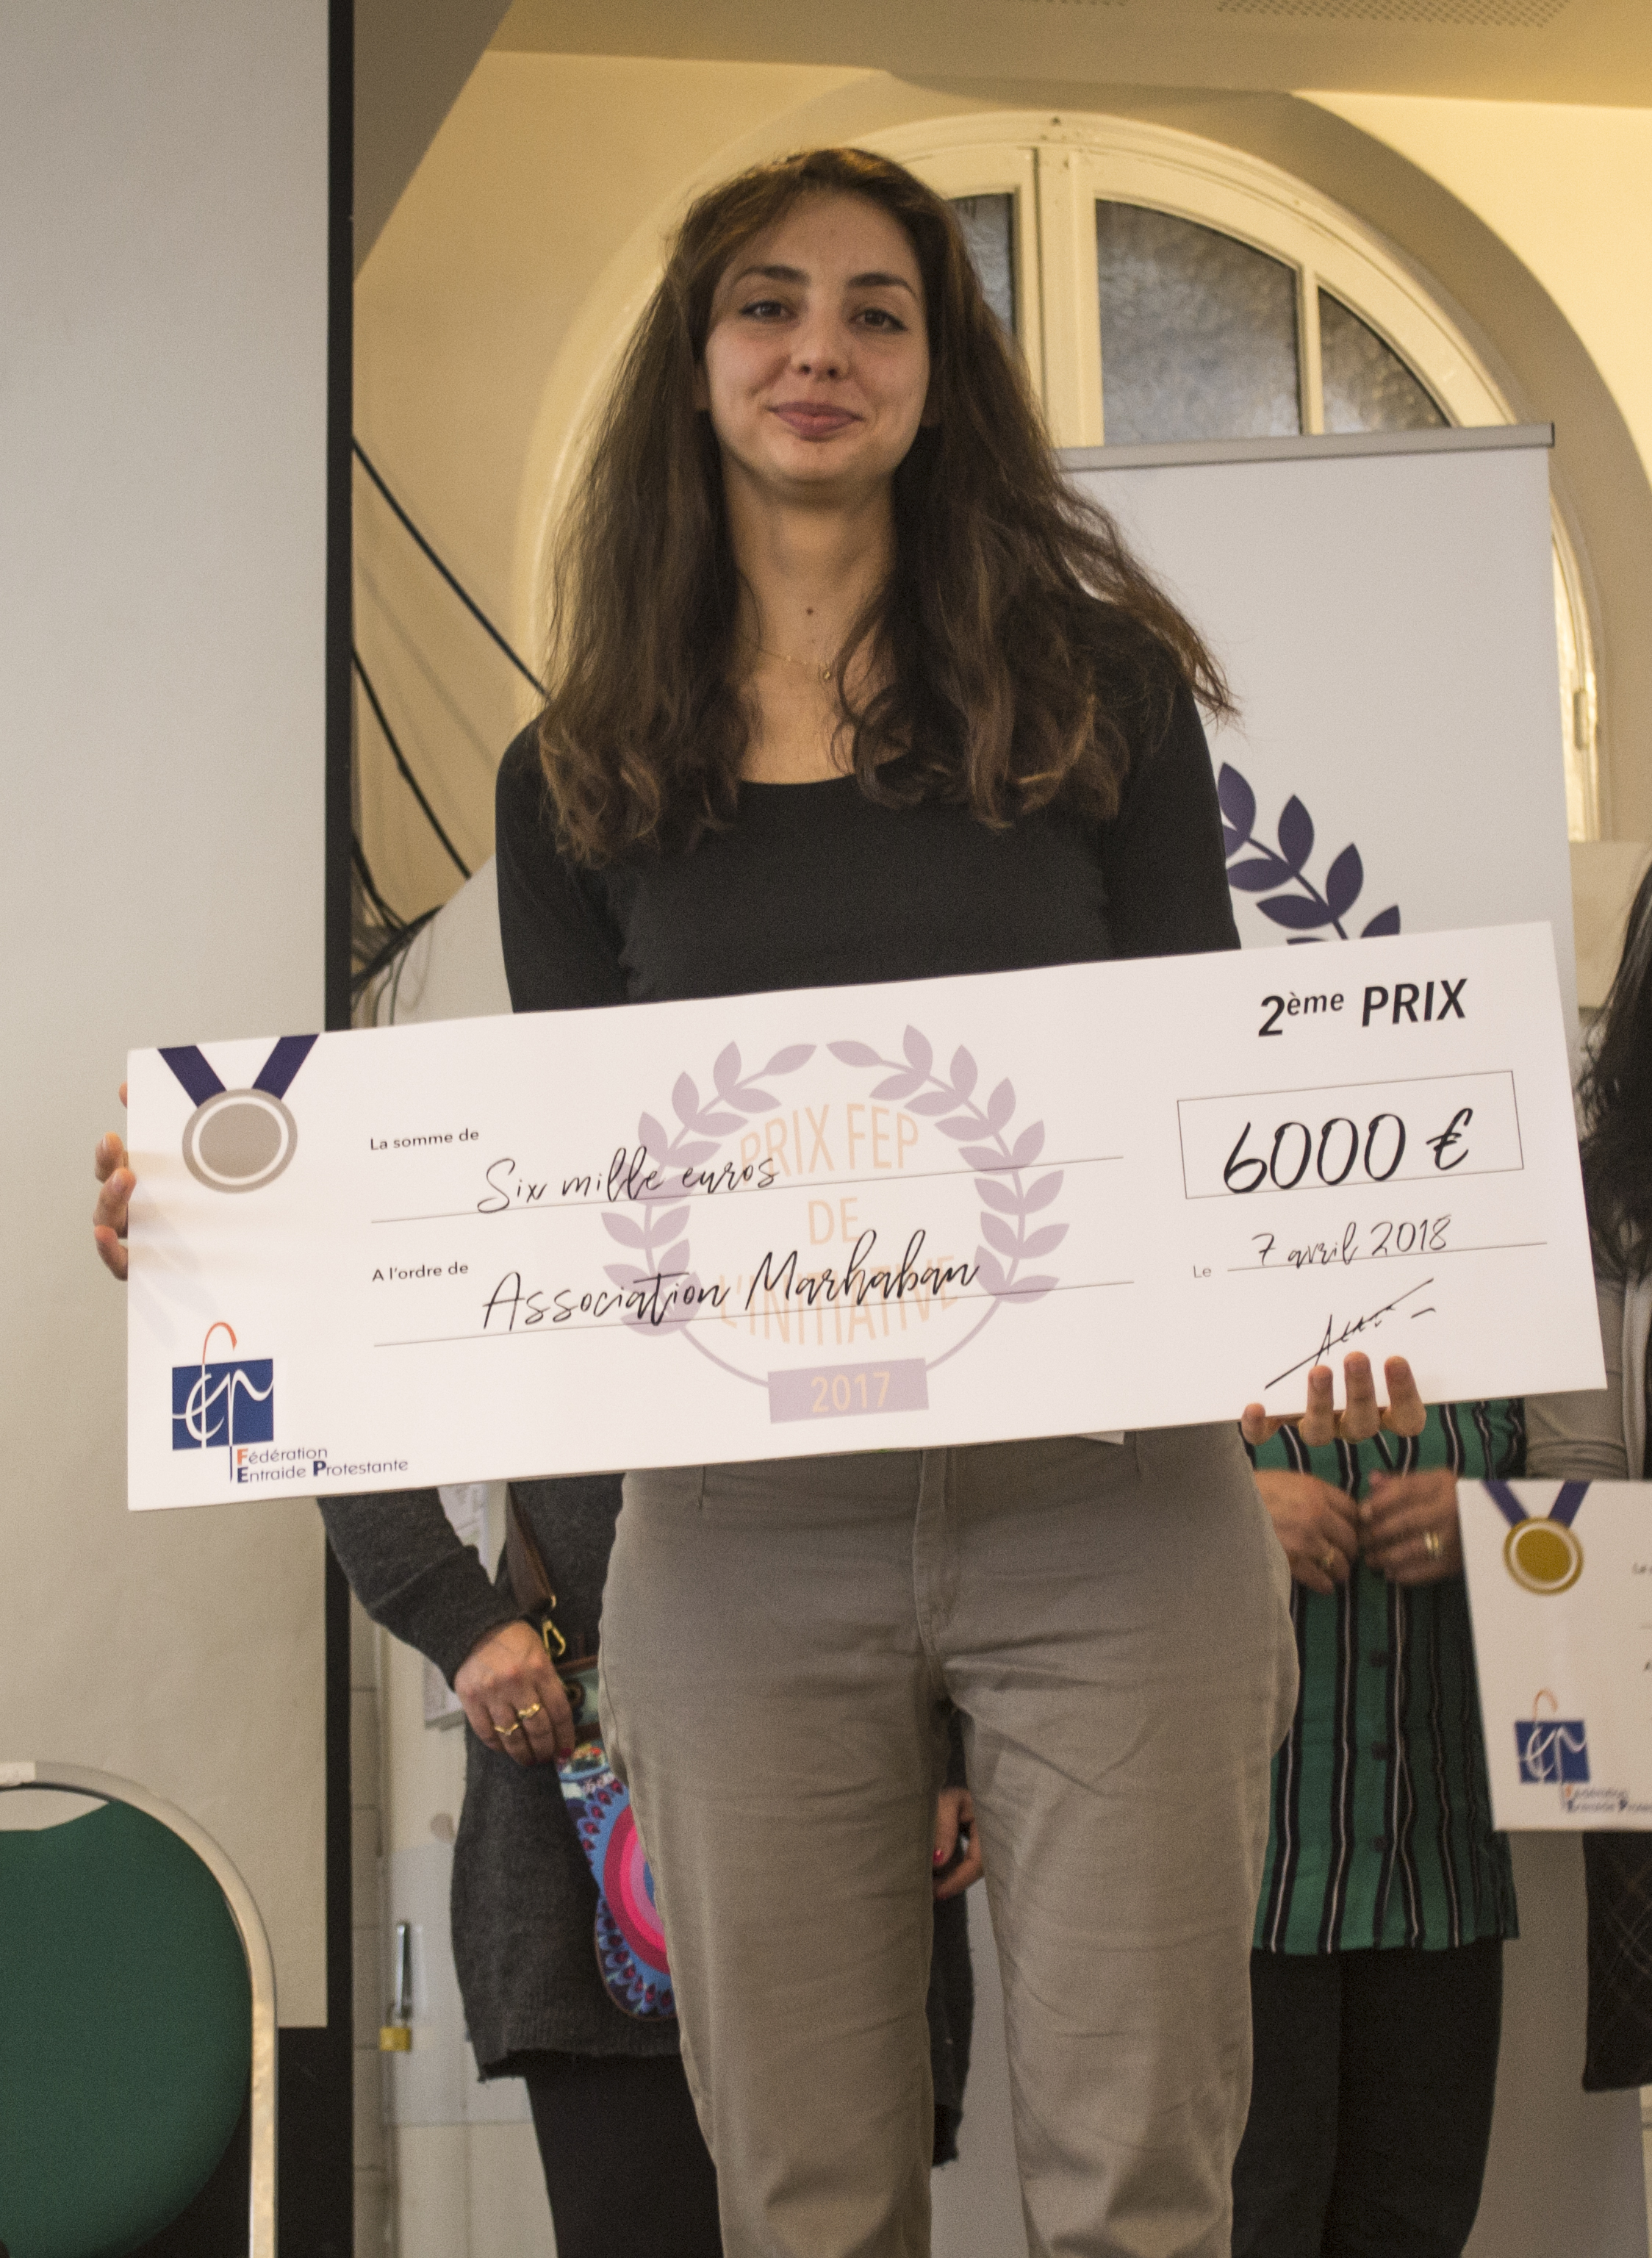 Prix de l'initiative 2017, 2nd prix pour l'association Marhaban